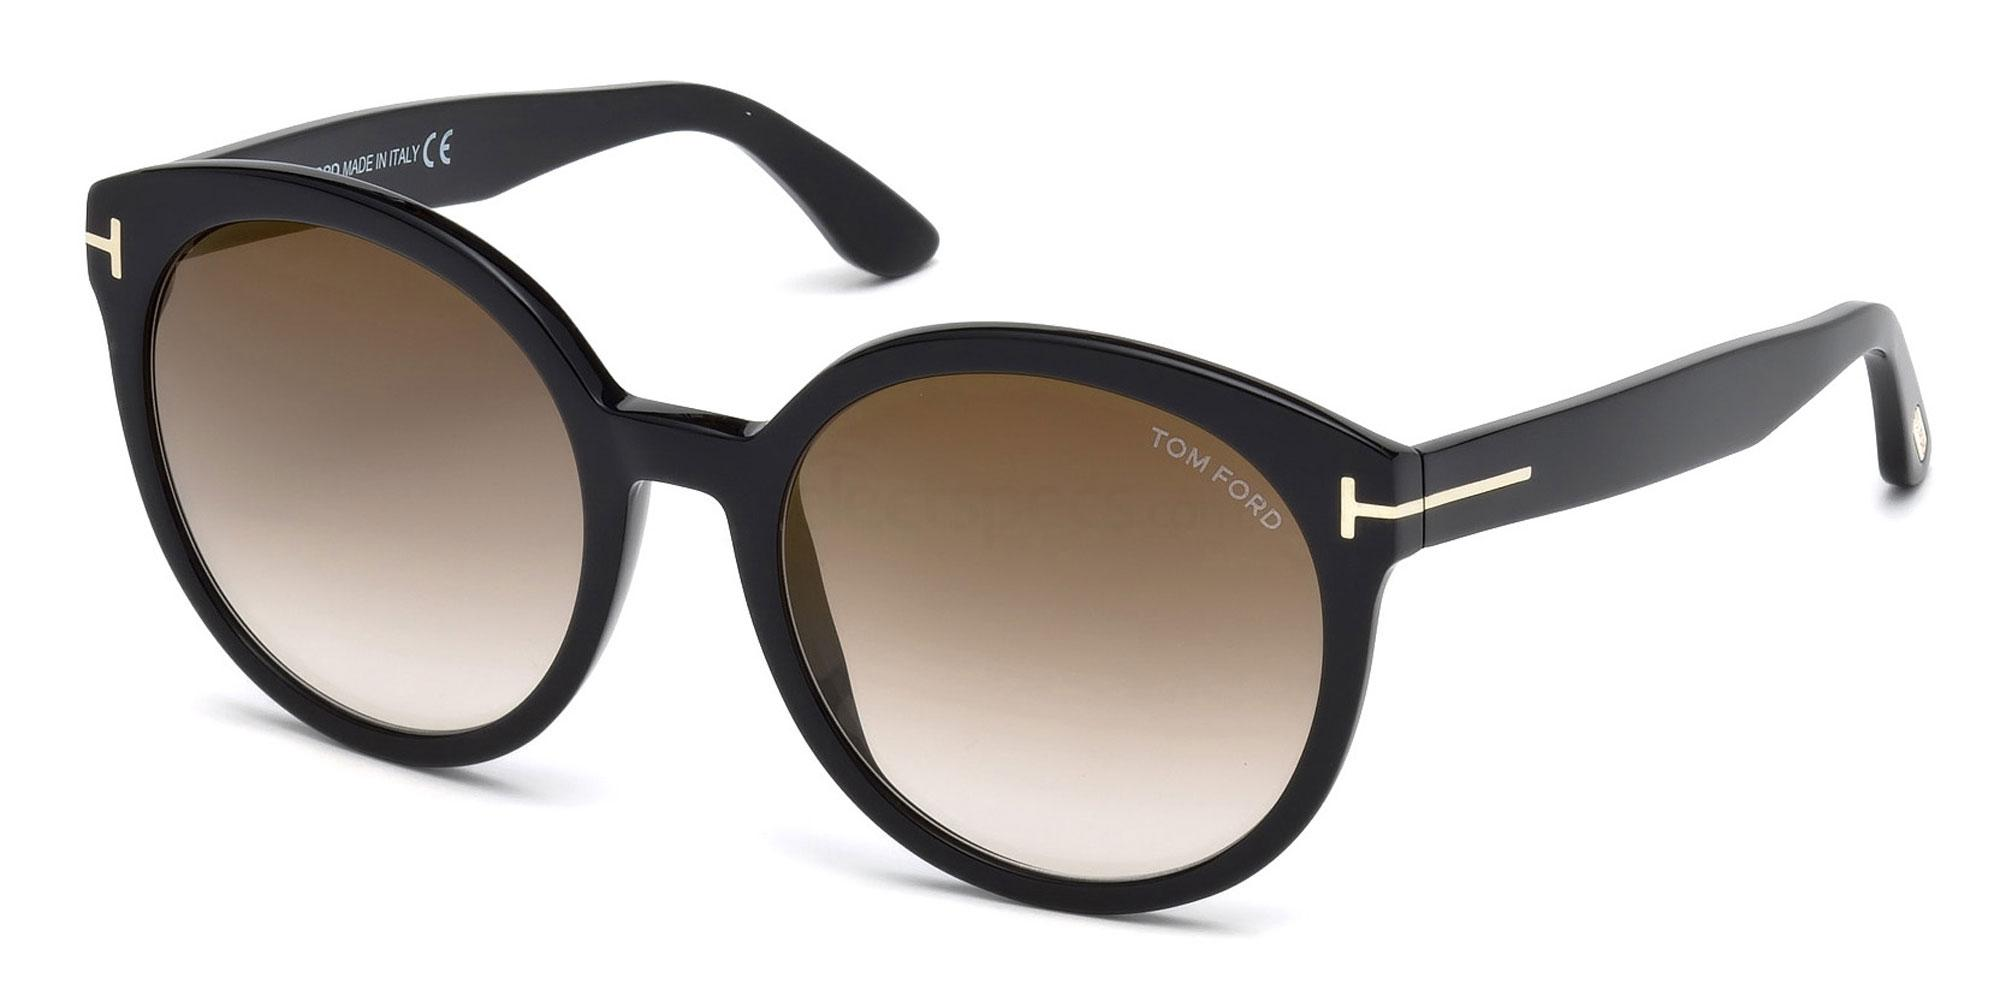 01G FT0503 , Tom Ford